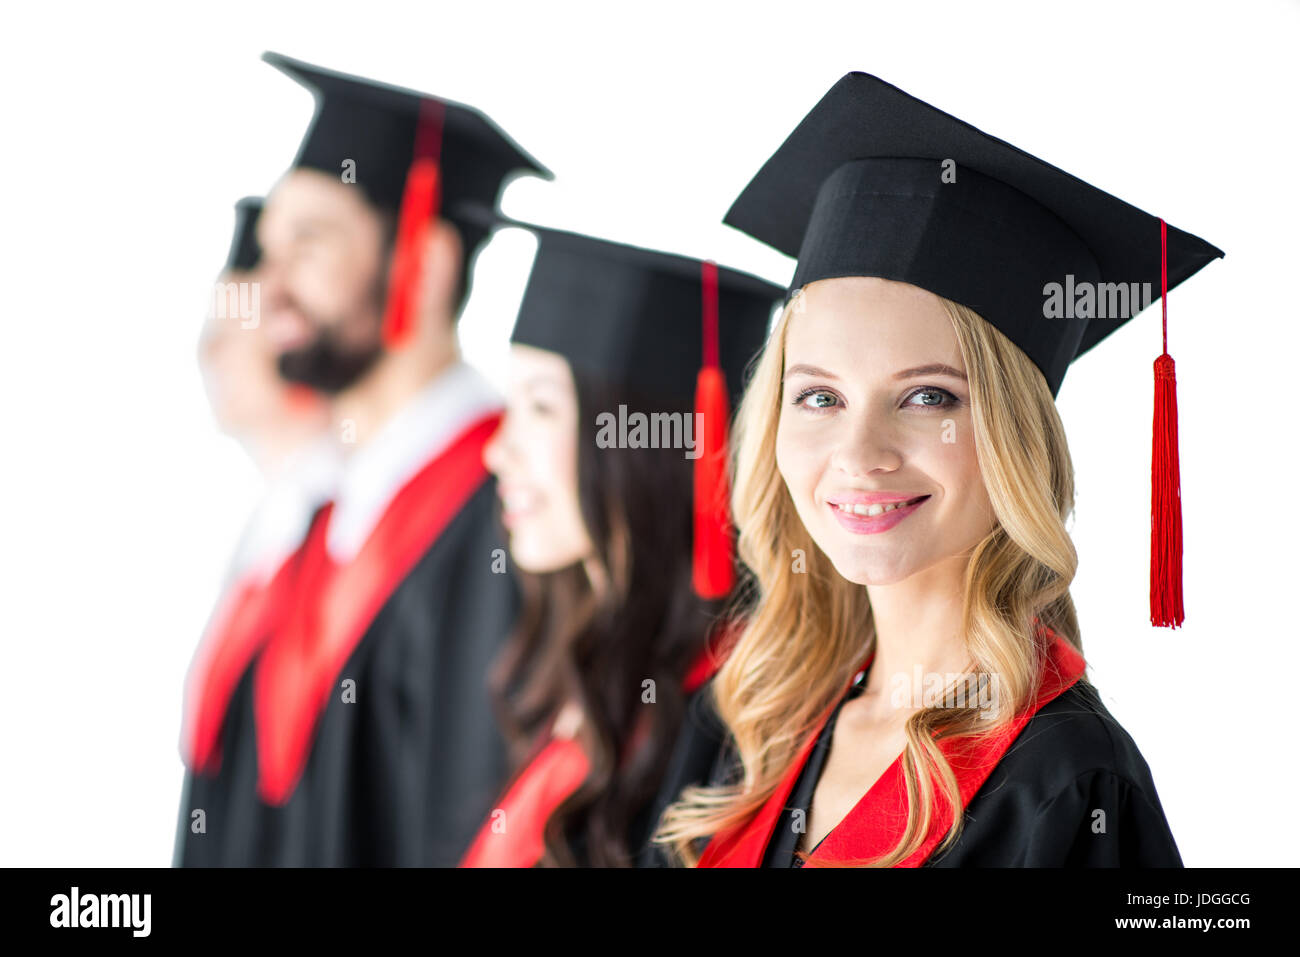 attractive student in graduation cap with diploma, with friends behind isolated on white - Stock Image